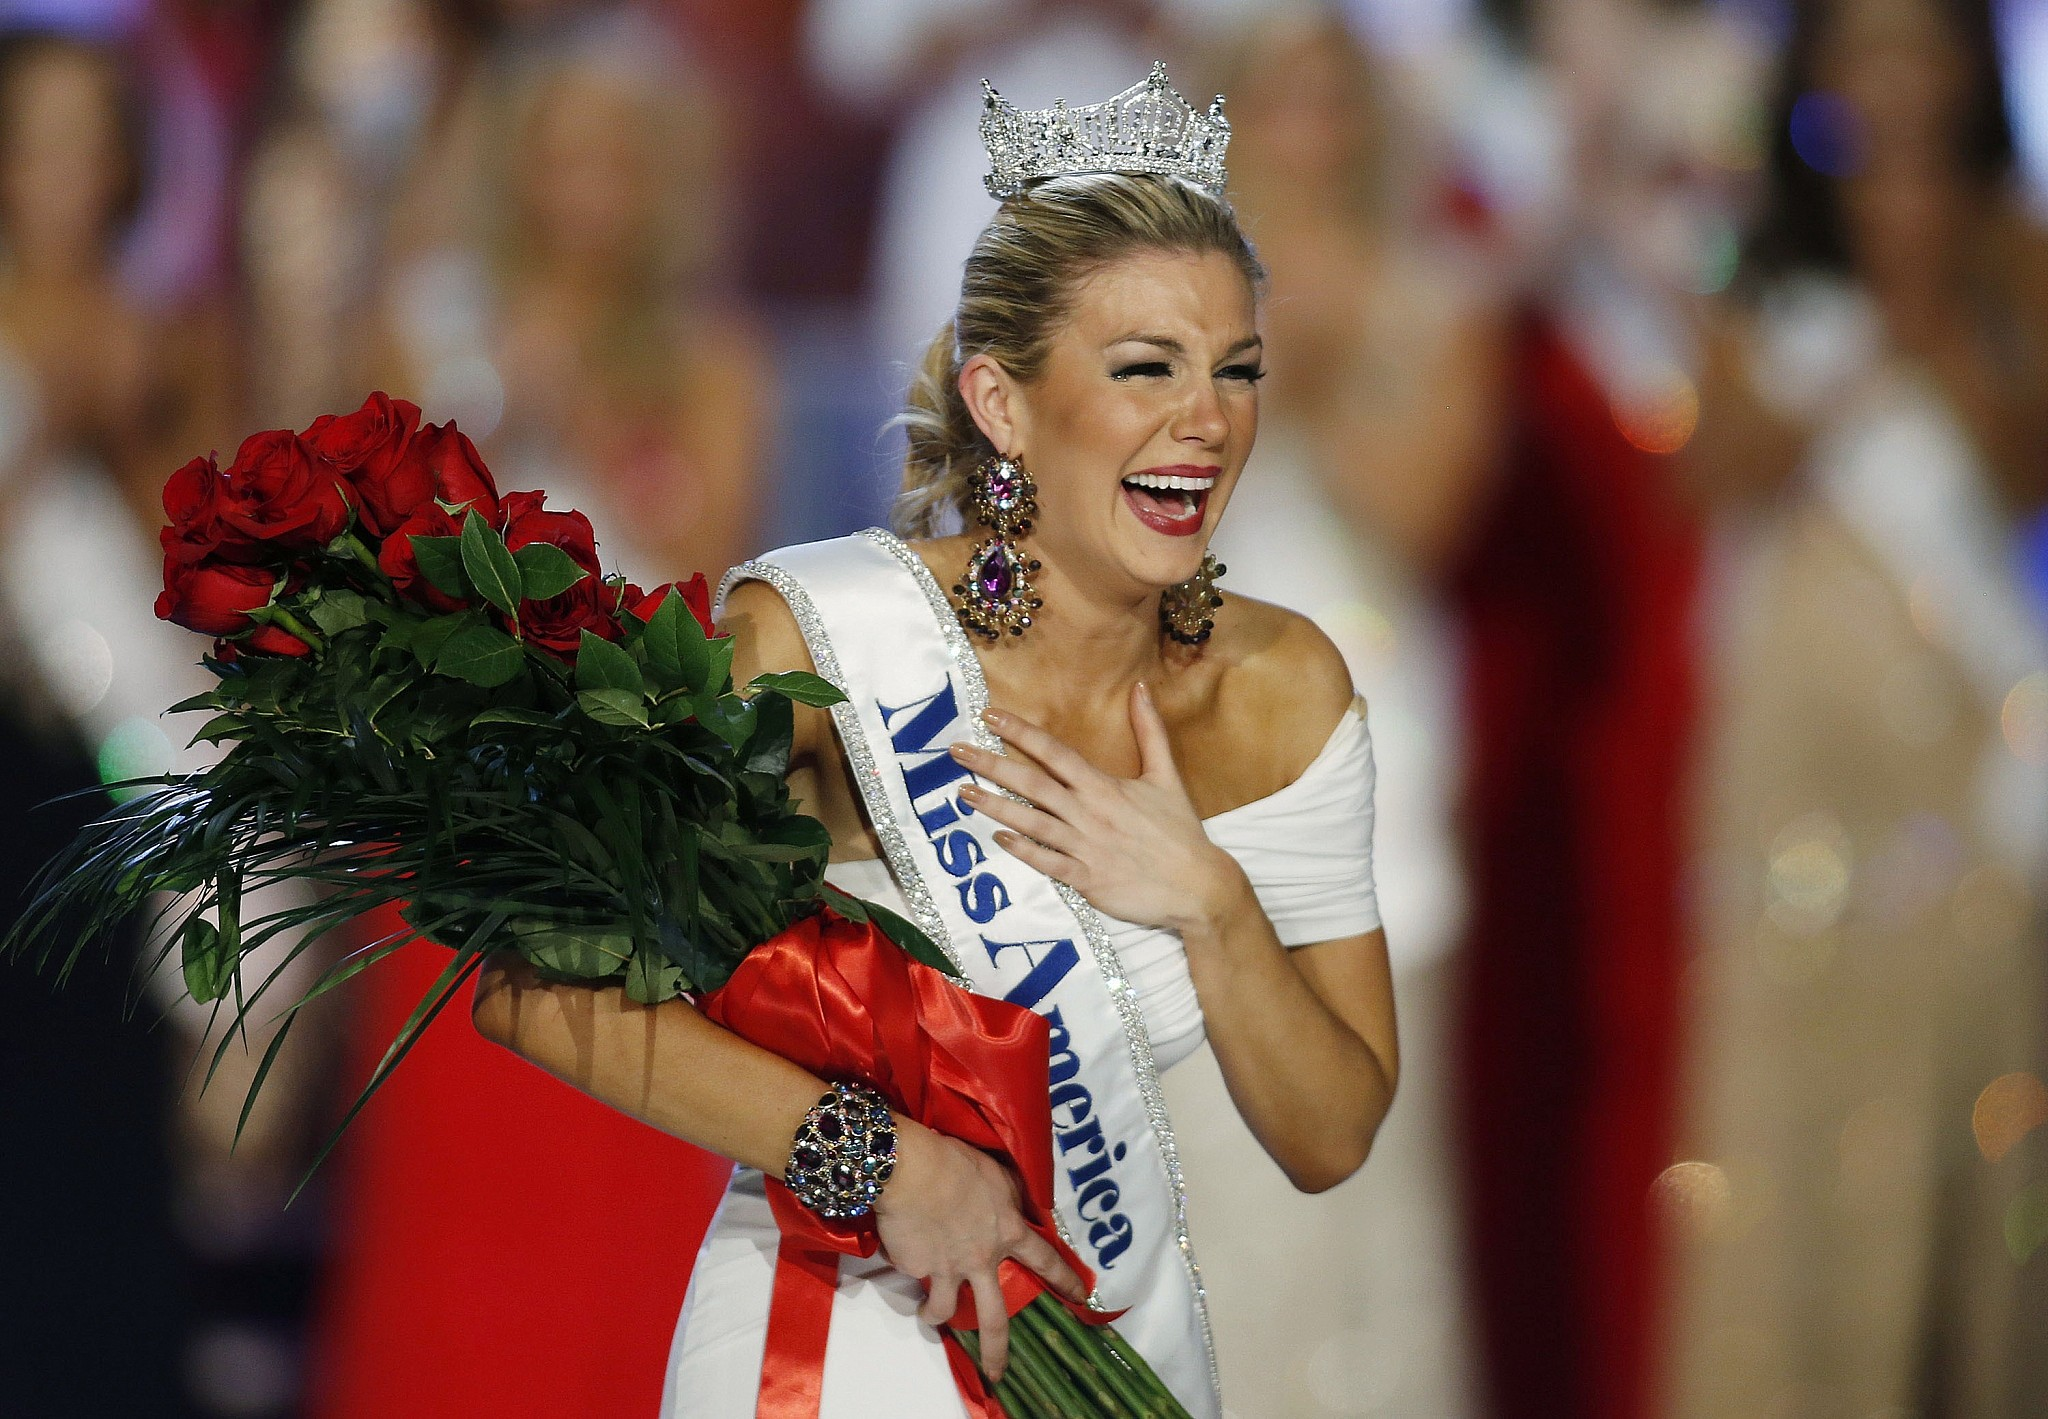 Miss America President Reportedly Resigns After CEO's Vulgar Emails Surface